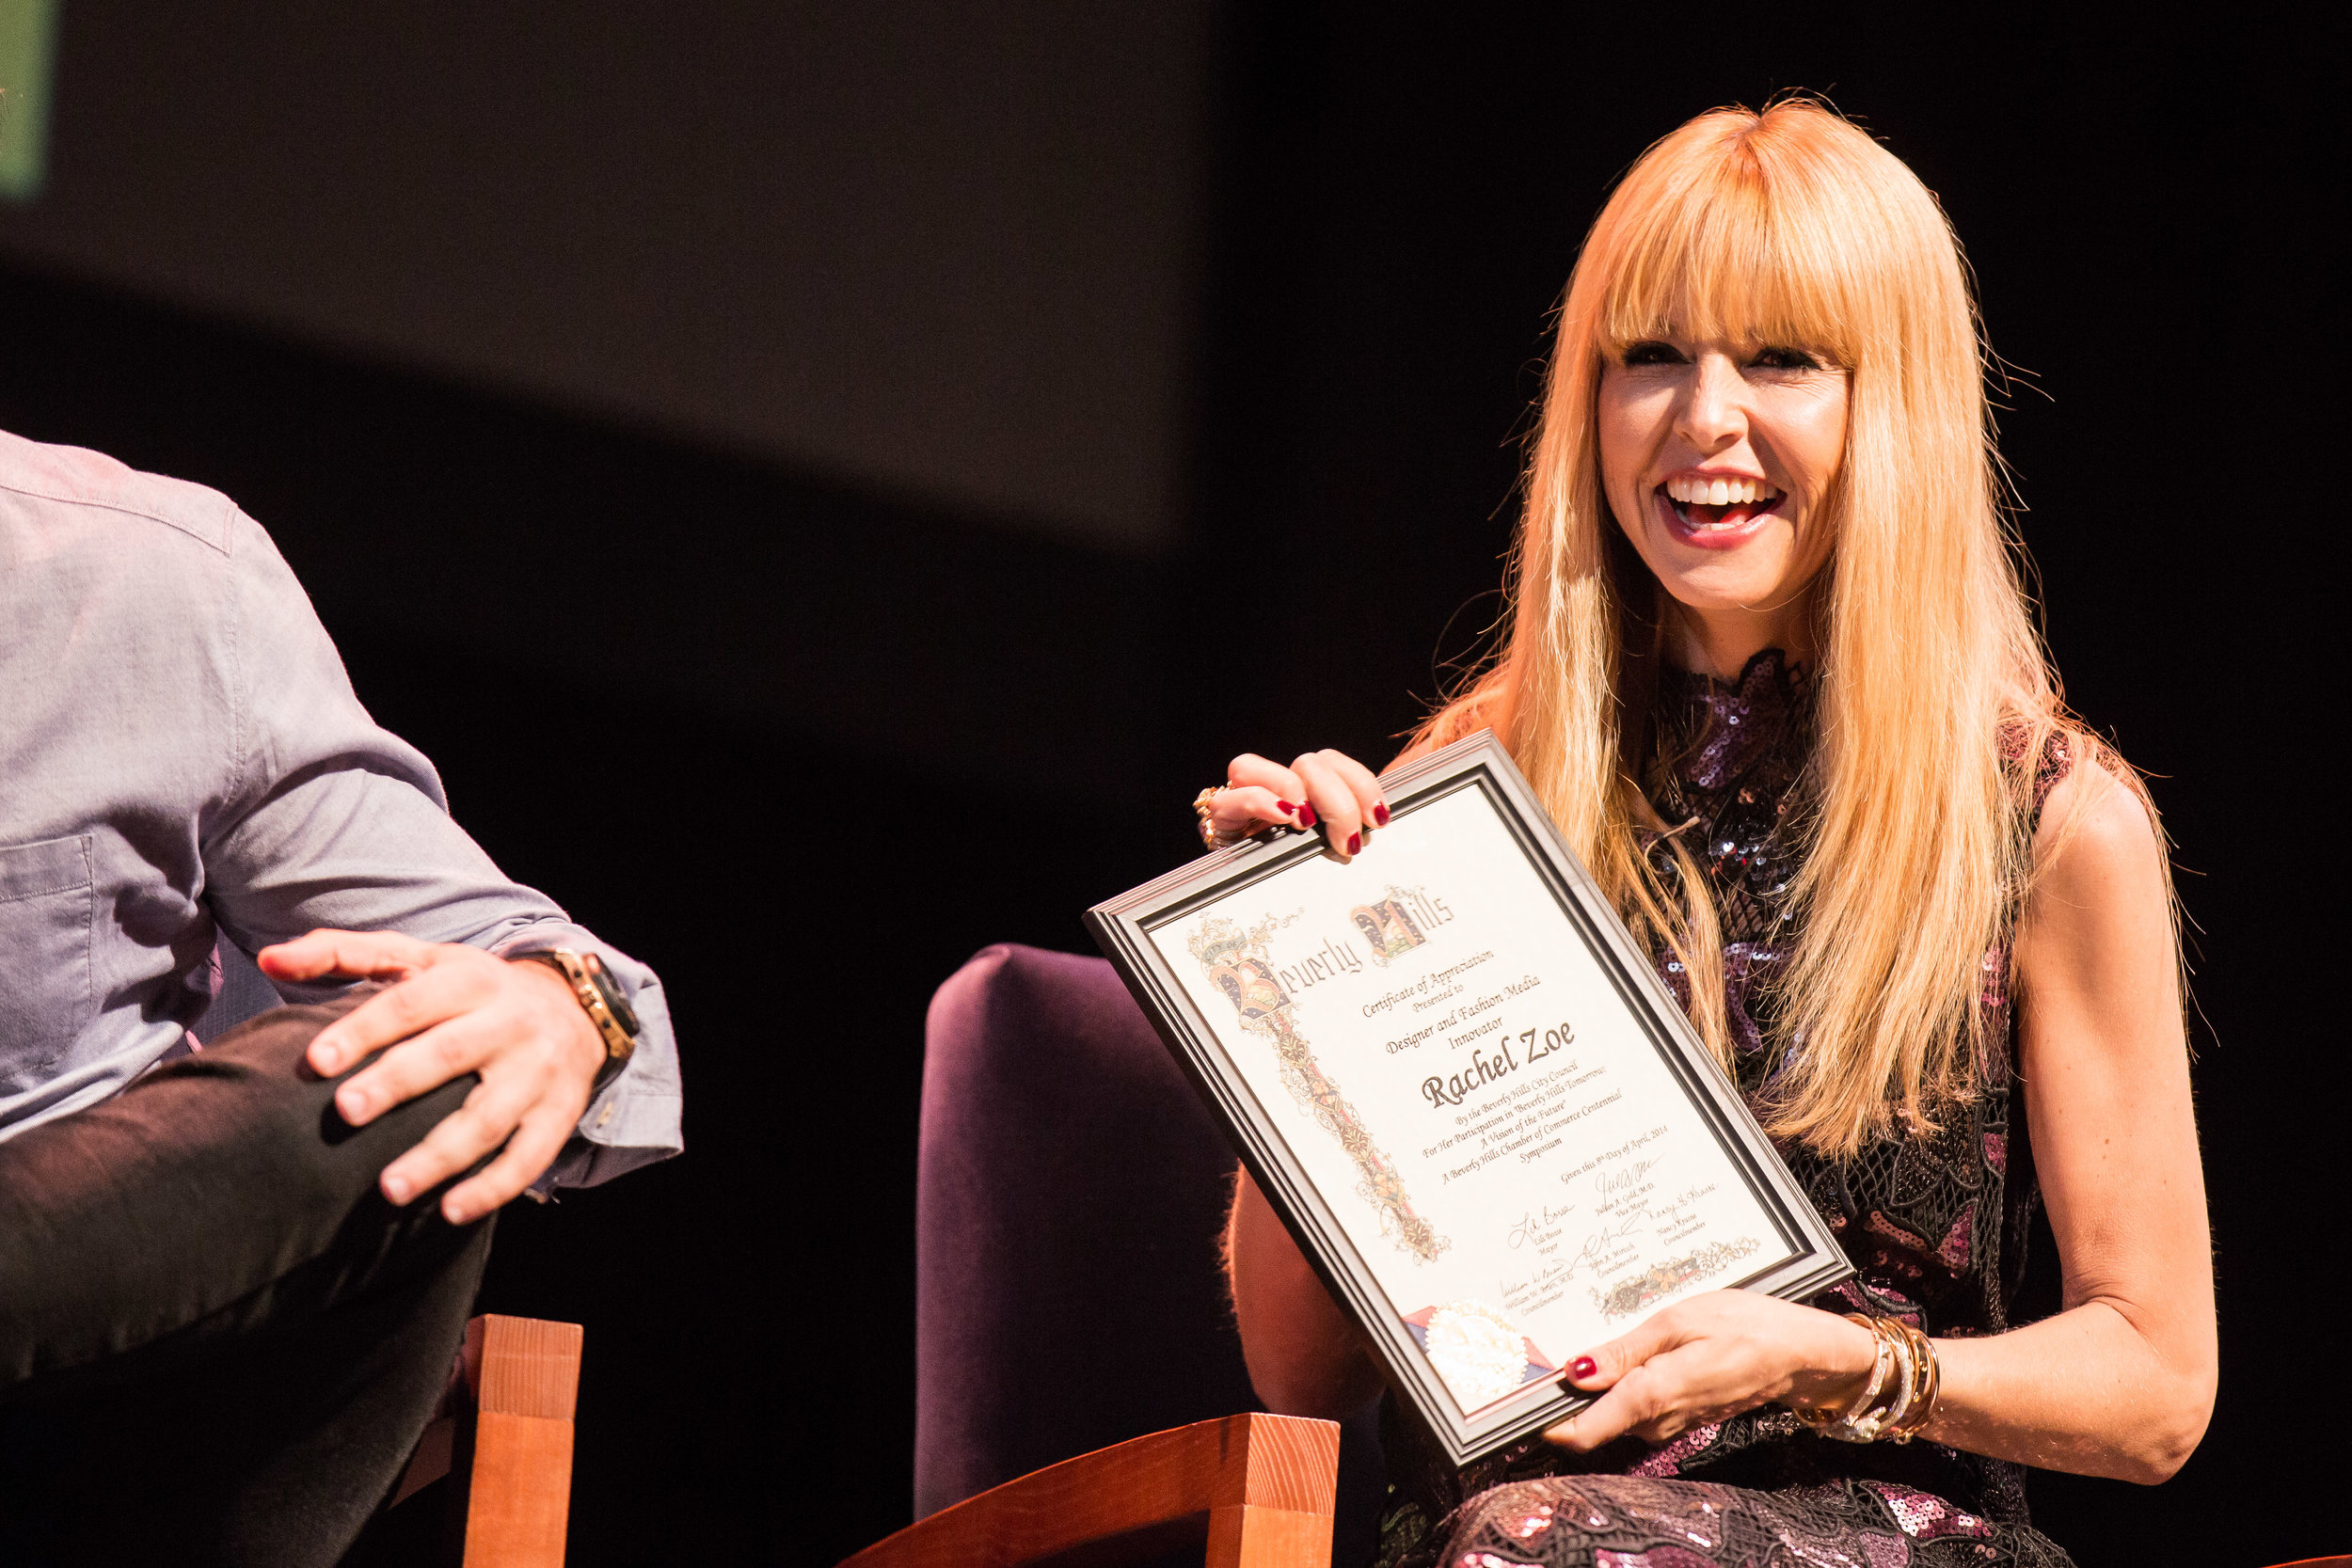 Rachel Zoe honored at Beverly Hills Chamber of Commerce event